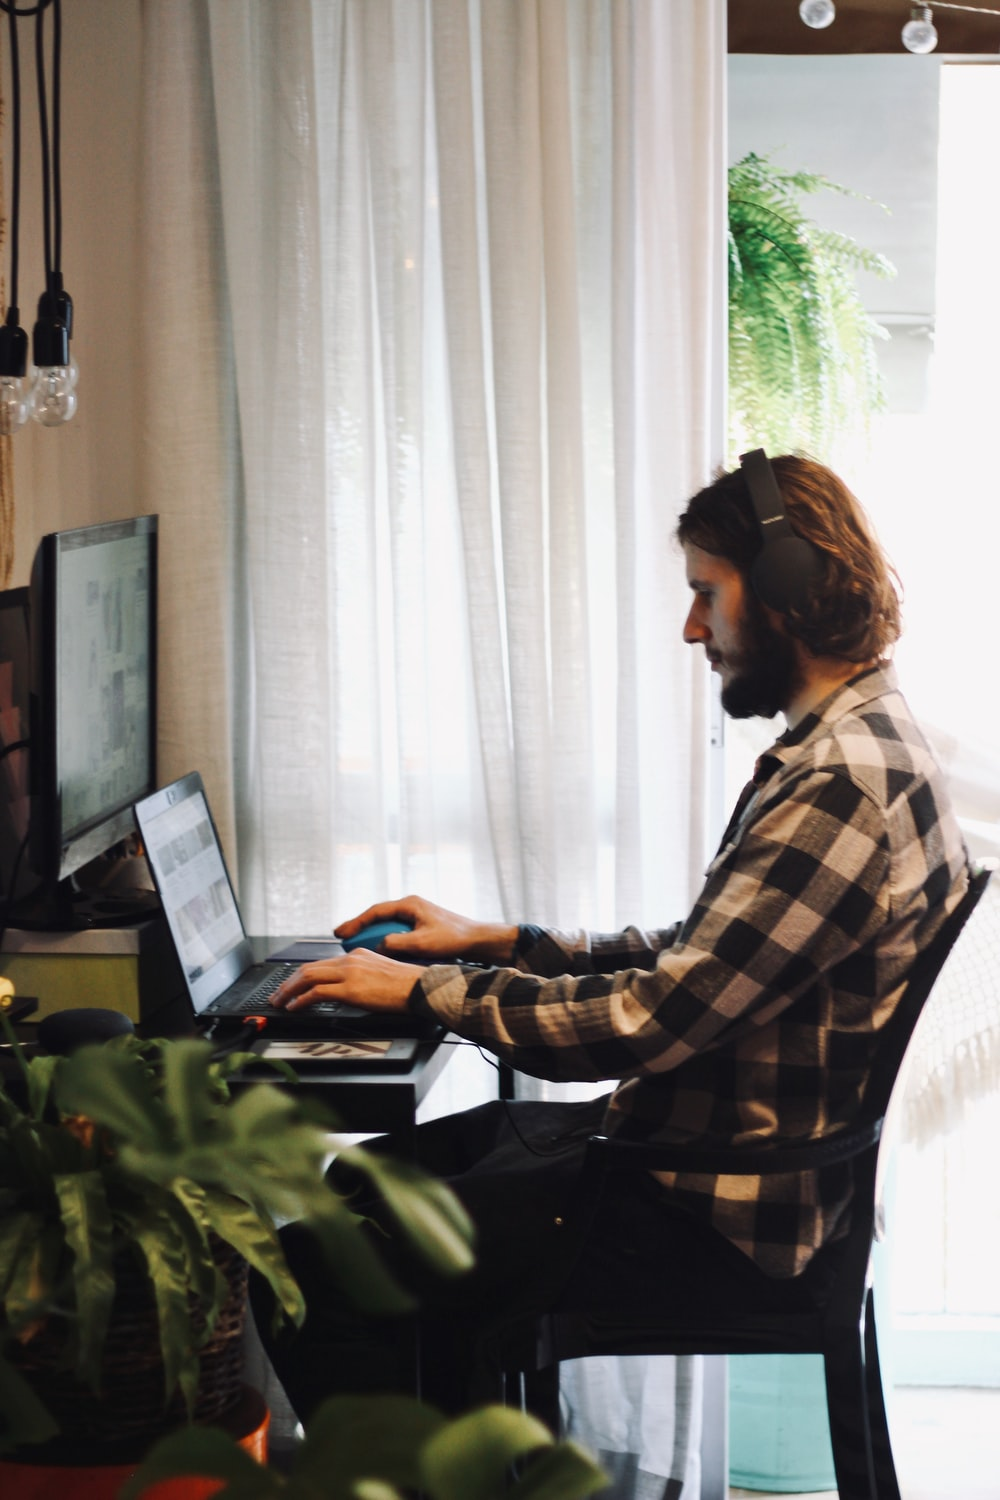 woman in black and white plaid dress shirt using laptop computer